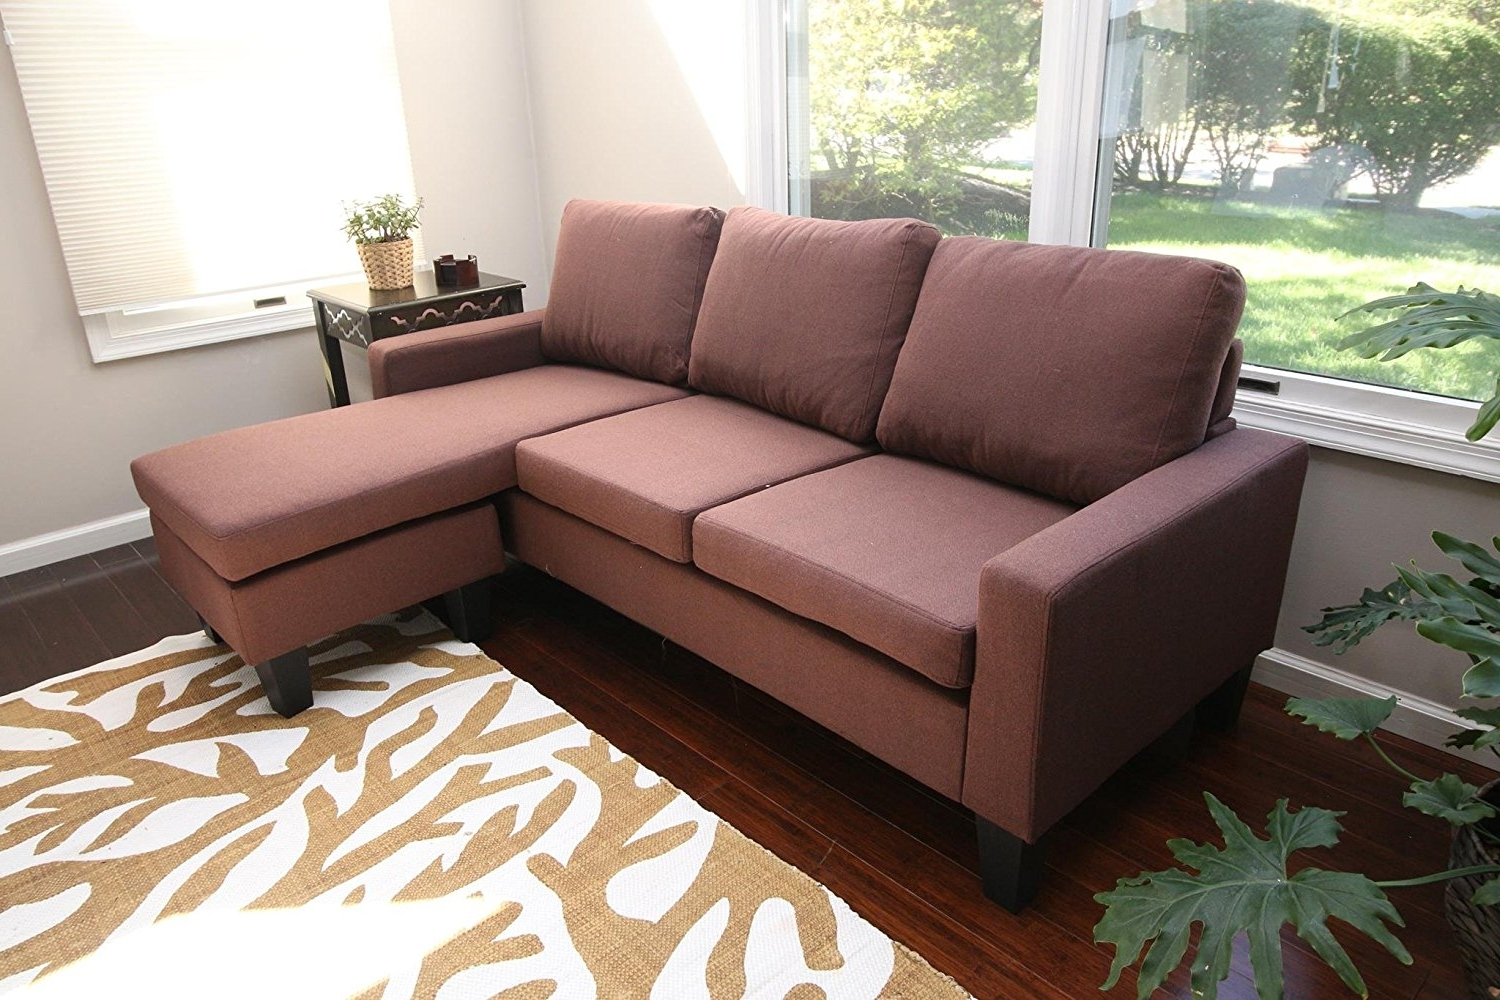 80X80 Sectional Sofas Throughout Trendy Furniture : Corner Couch 3D Model Zen Sectional Sofa Corner Couch (Gallery 9 of 15)